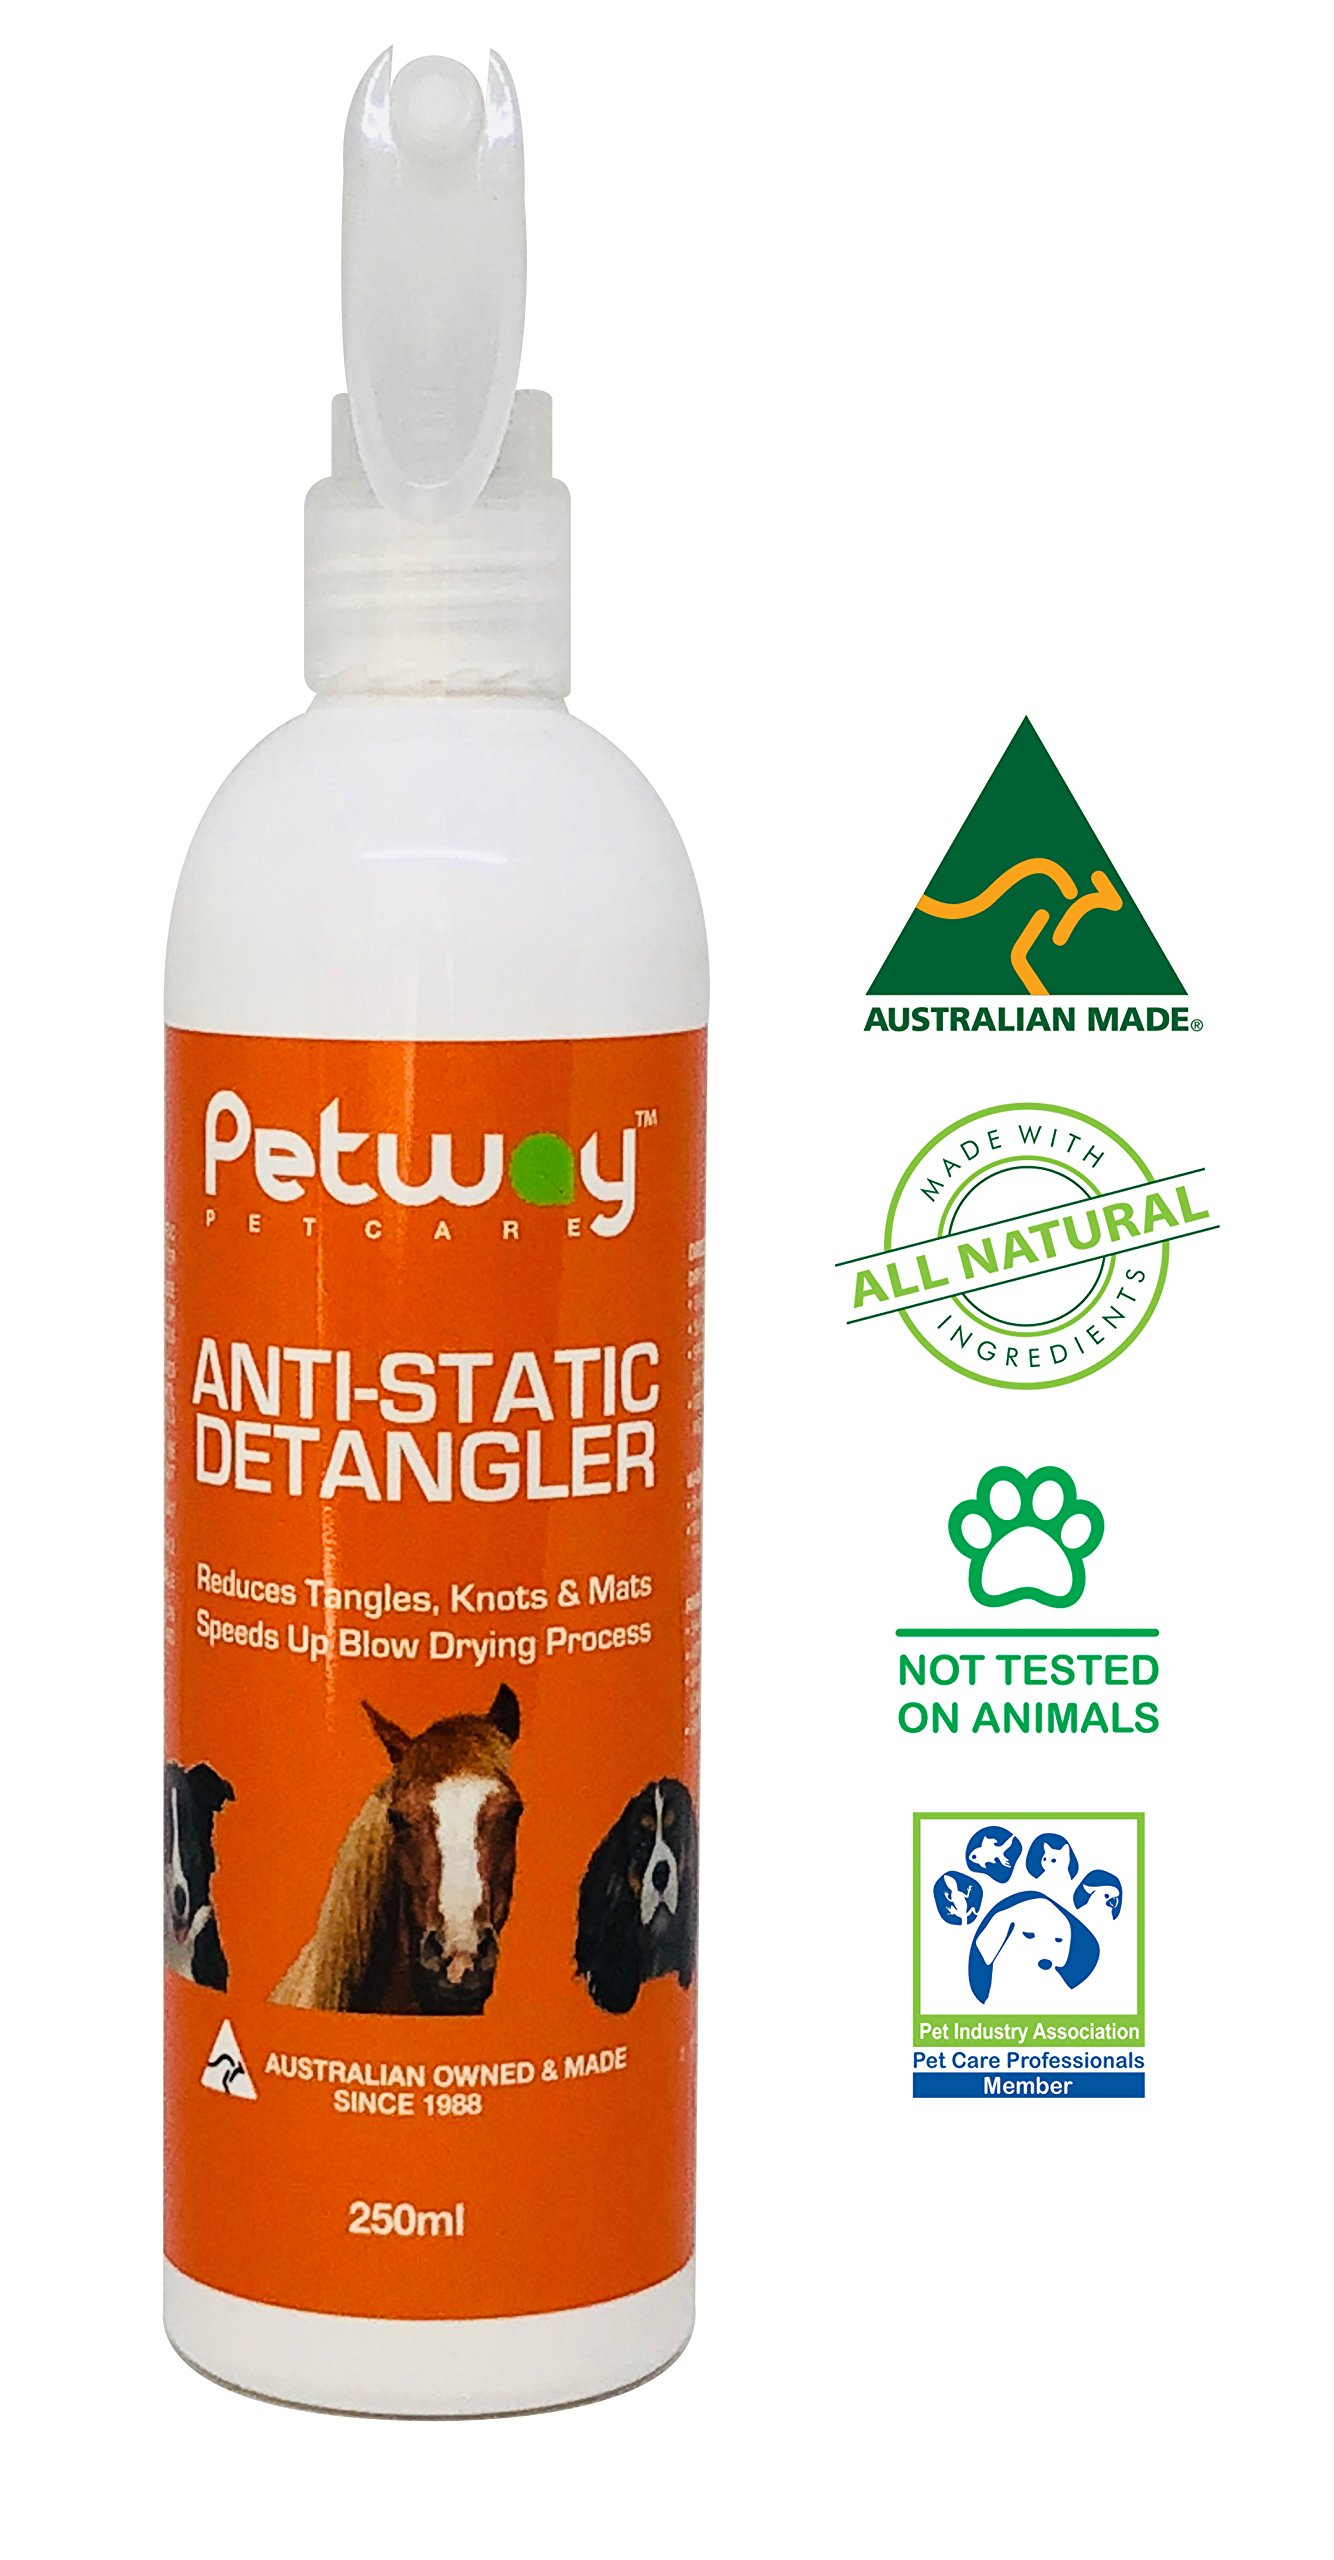 PETWAY Petcare Anti-Static Detangler - Dematting Spray for Dogs, Pet Detangling Spray, Free of Phosphates, Parabens & Enzymes - Tangle Remover, Daily Grooming Aid, Soap & Fragrance Free (250) by PETWAY